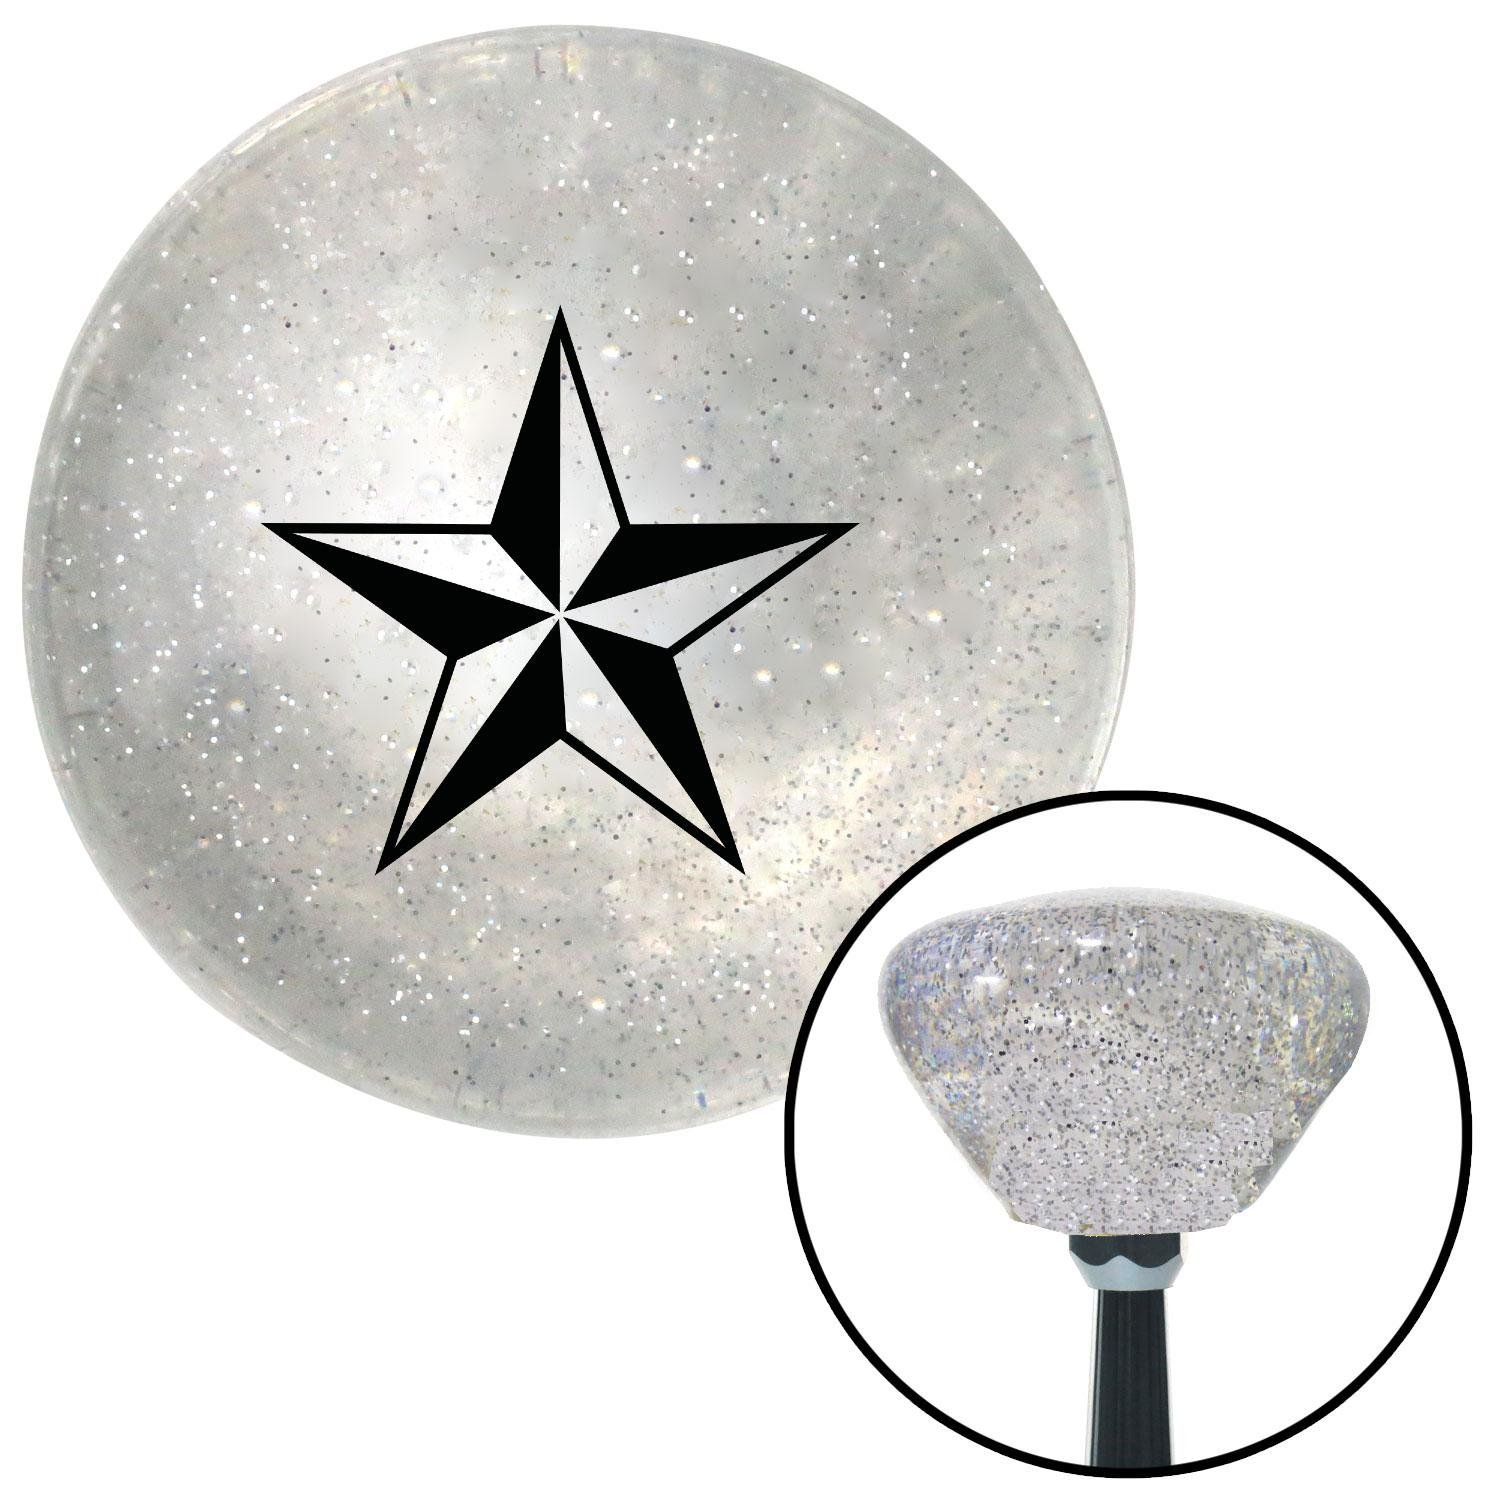 American Shifter 163356 Clear Retro Metal Flake Shift Knob with M16 x 1.5 Insert Black 5 Point 3-D Star